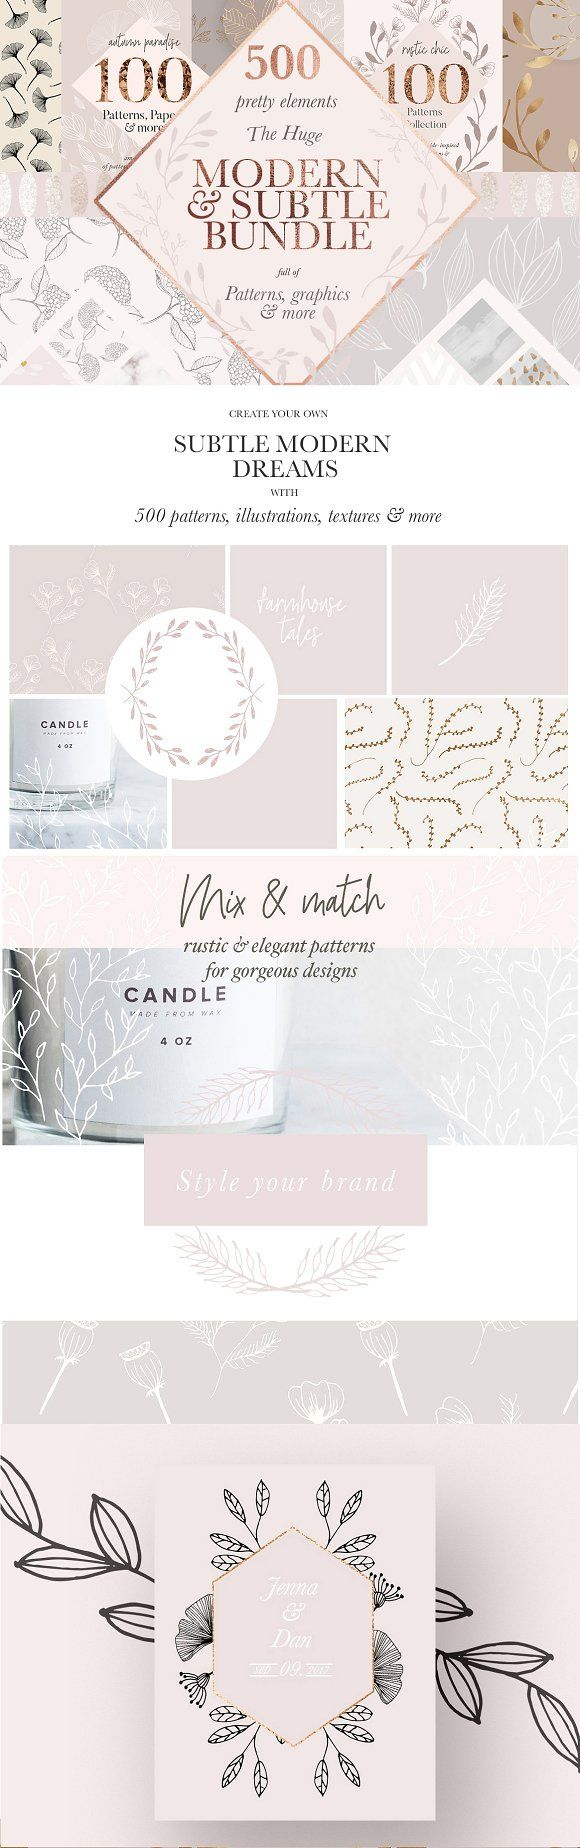 Modern &Subtle Floral Pattern Bundle. I bundled up all of my bestselling subtle & modern collections to offer you a huge variety of different and versatile designs for your upcoming projects. Grab a total of 4 big collections for an amazing discount of 60% off the original price - that makes more than 500 files, including patterns, logos, backgrounds and illustrations! Make sure to grab yourself a tall latte and scroll your way through all the different pictures and collections to see what's ins